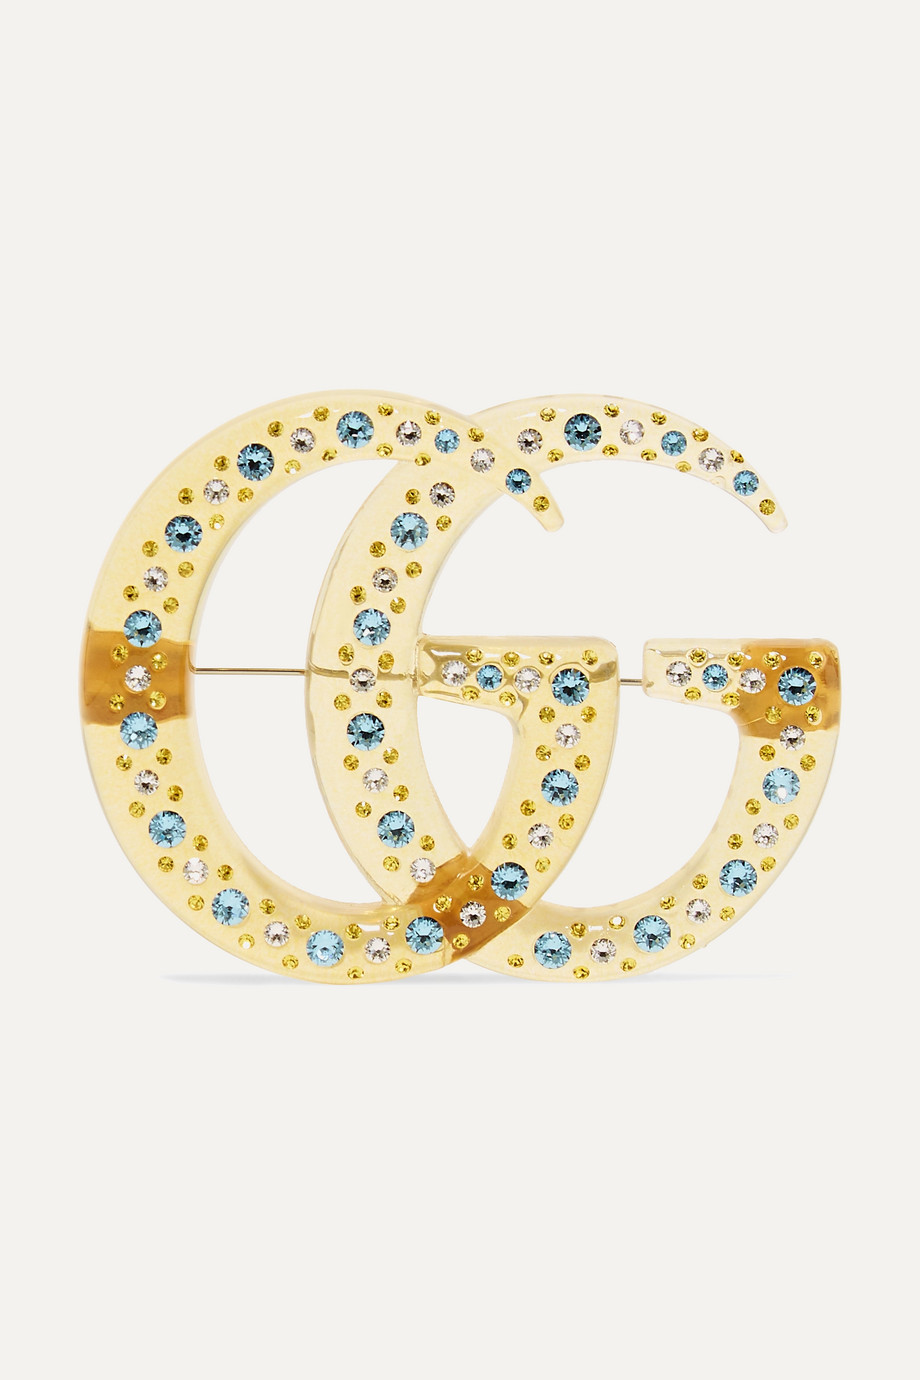 Gucci Gold-tone, resin and crystal brooch